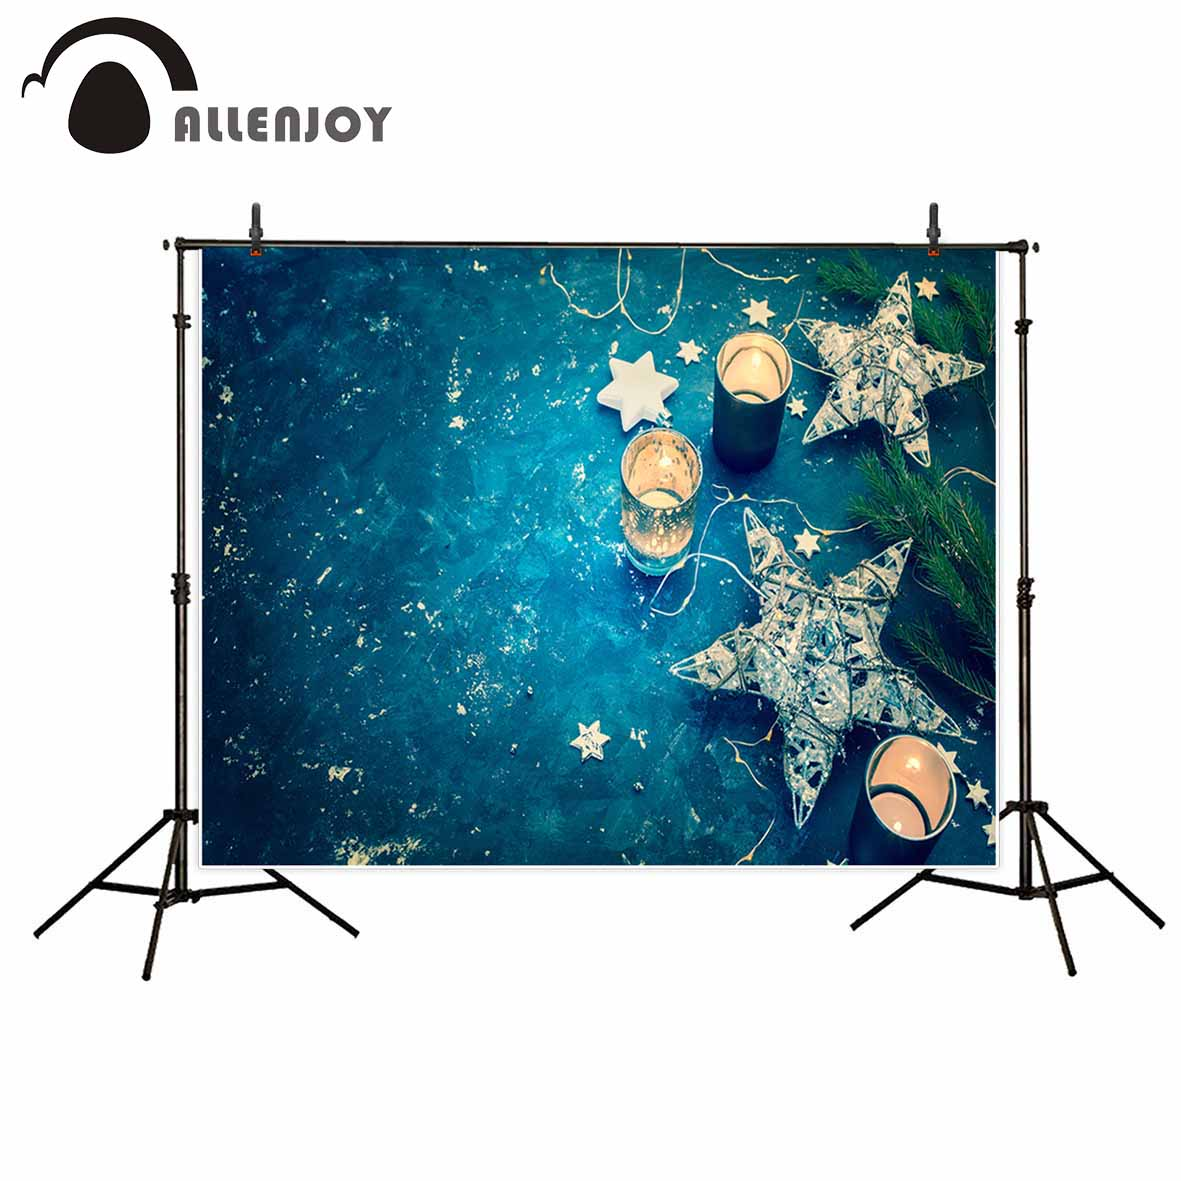 Allenjoy photography backdrop Star Still Life Child Portrait Ocean Candle new background photocall customize photo printed allenjoy photography backdrop library books student child newborn photo studio photocall background original design